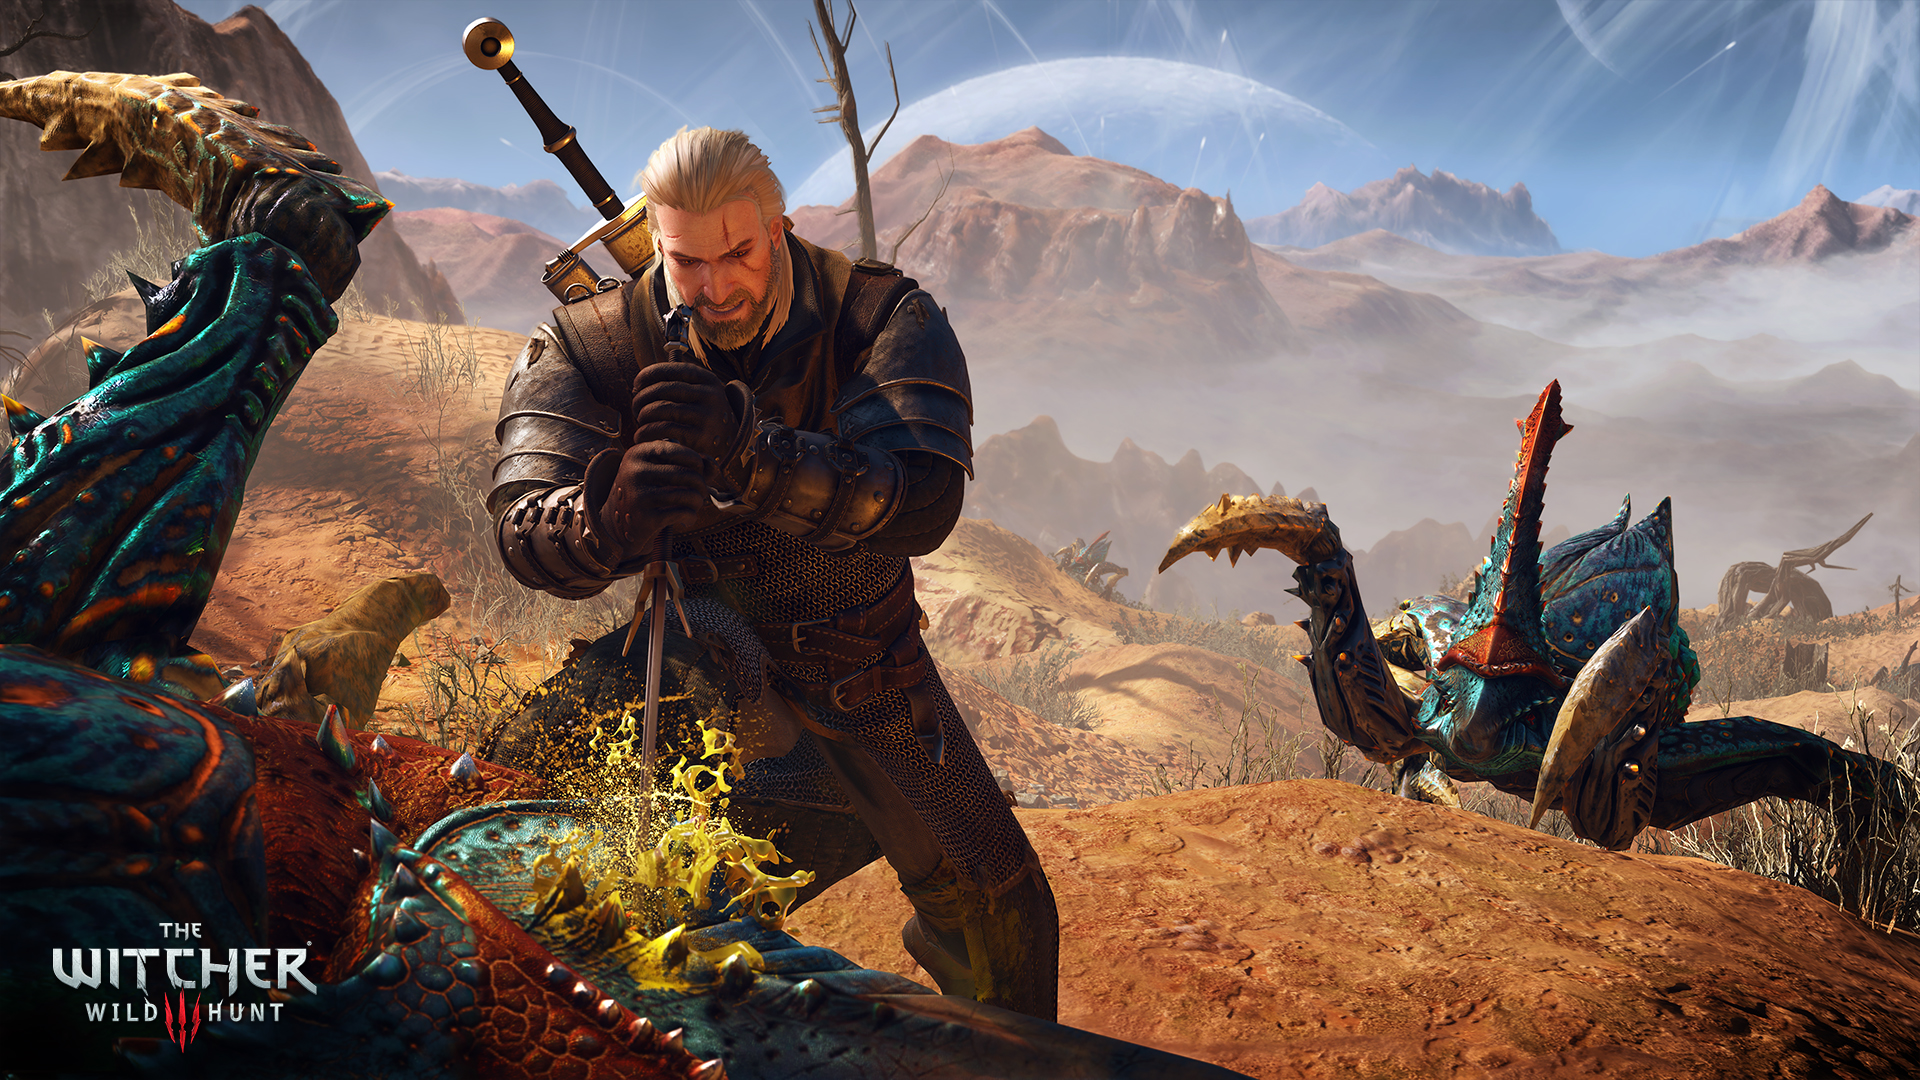 The Witcher 3 Missing Brother Witcher Contract Vg247